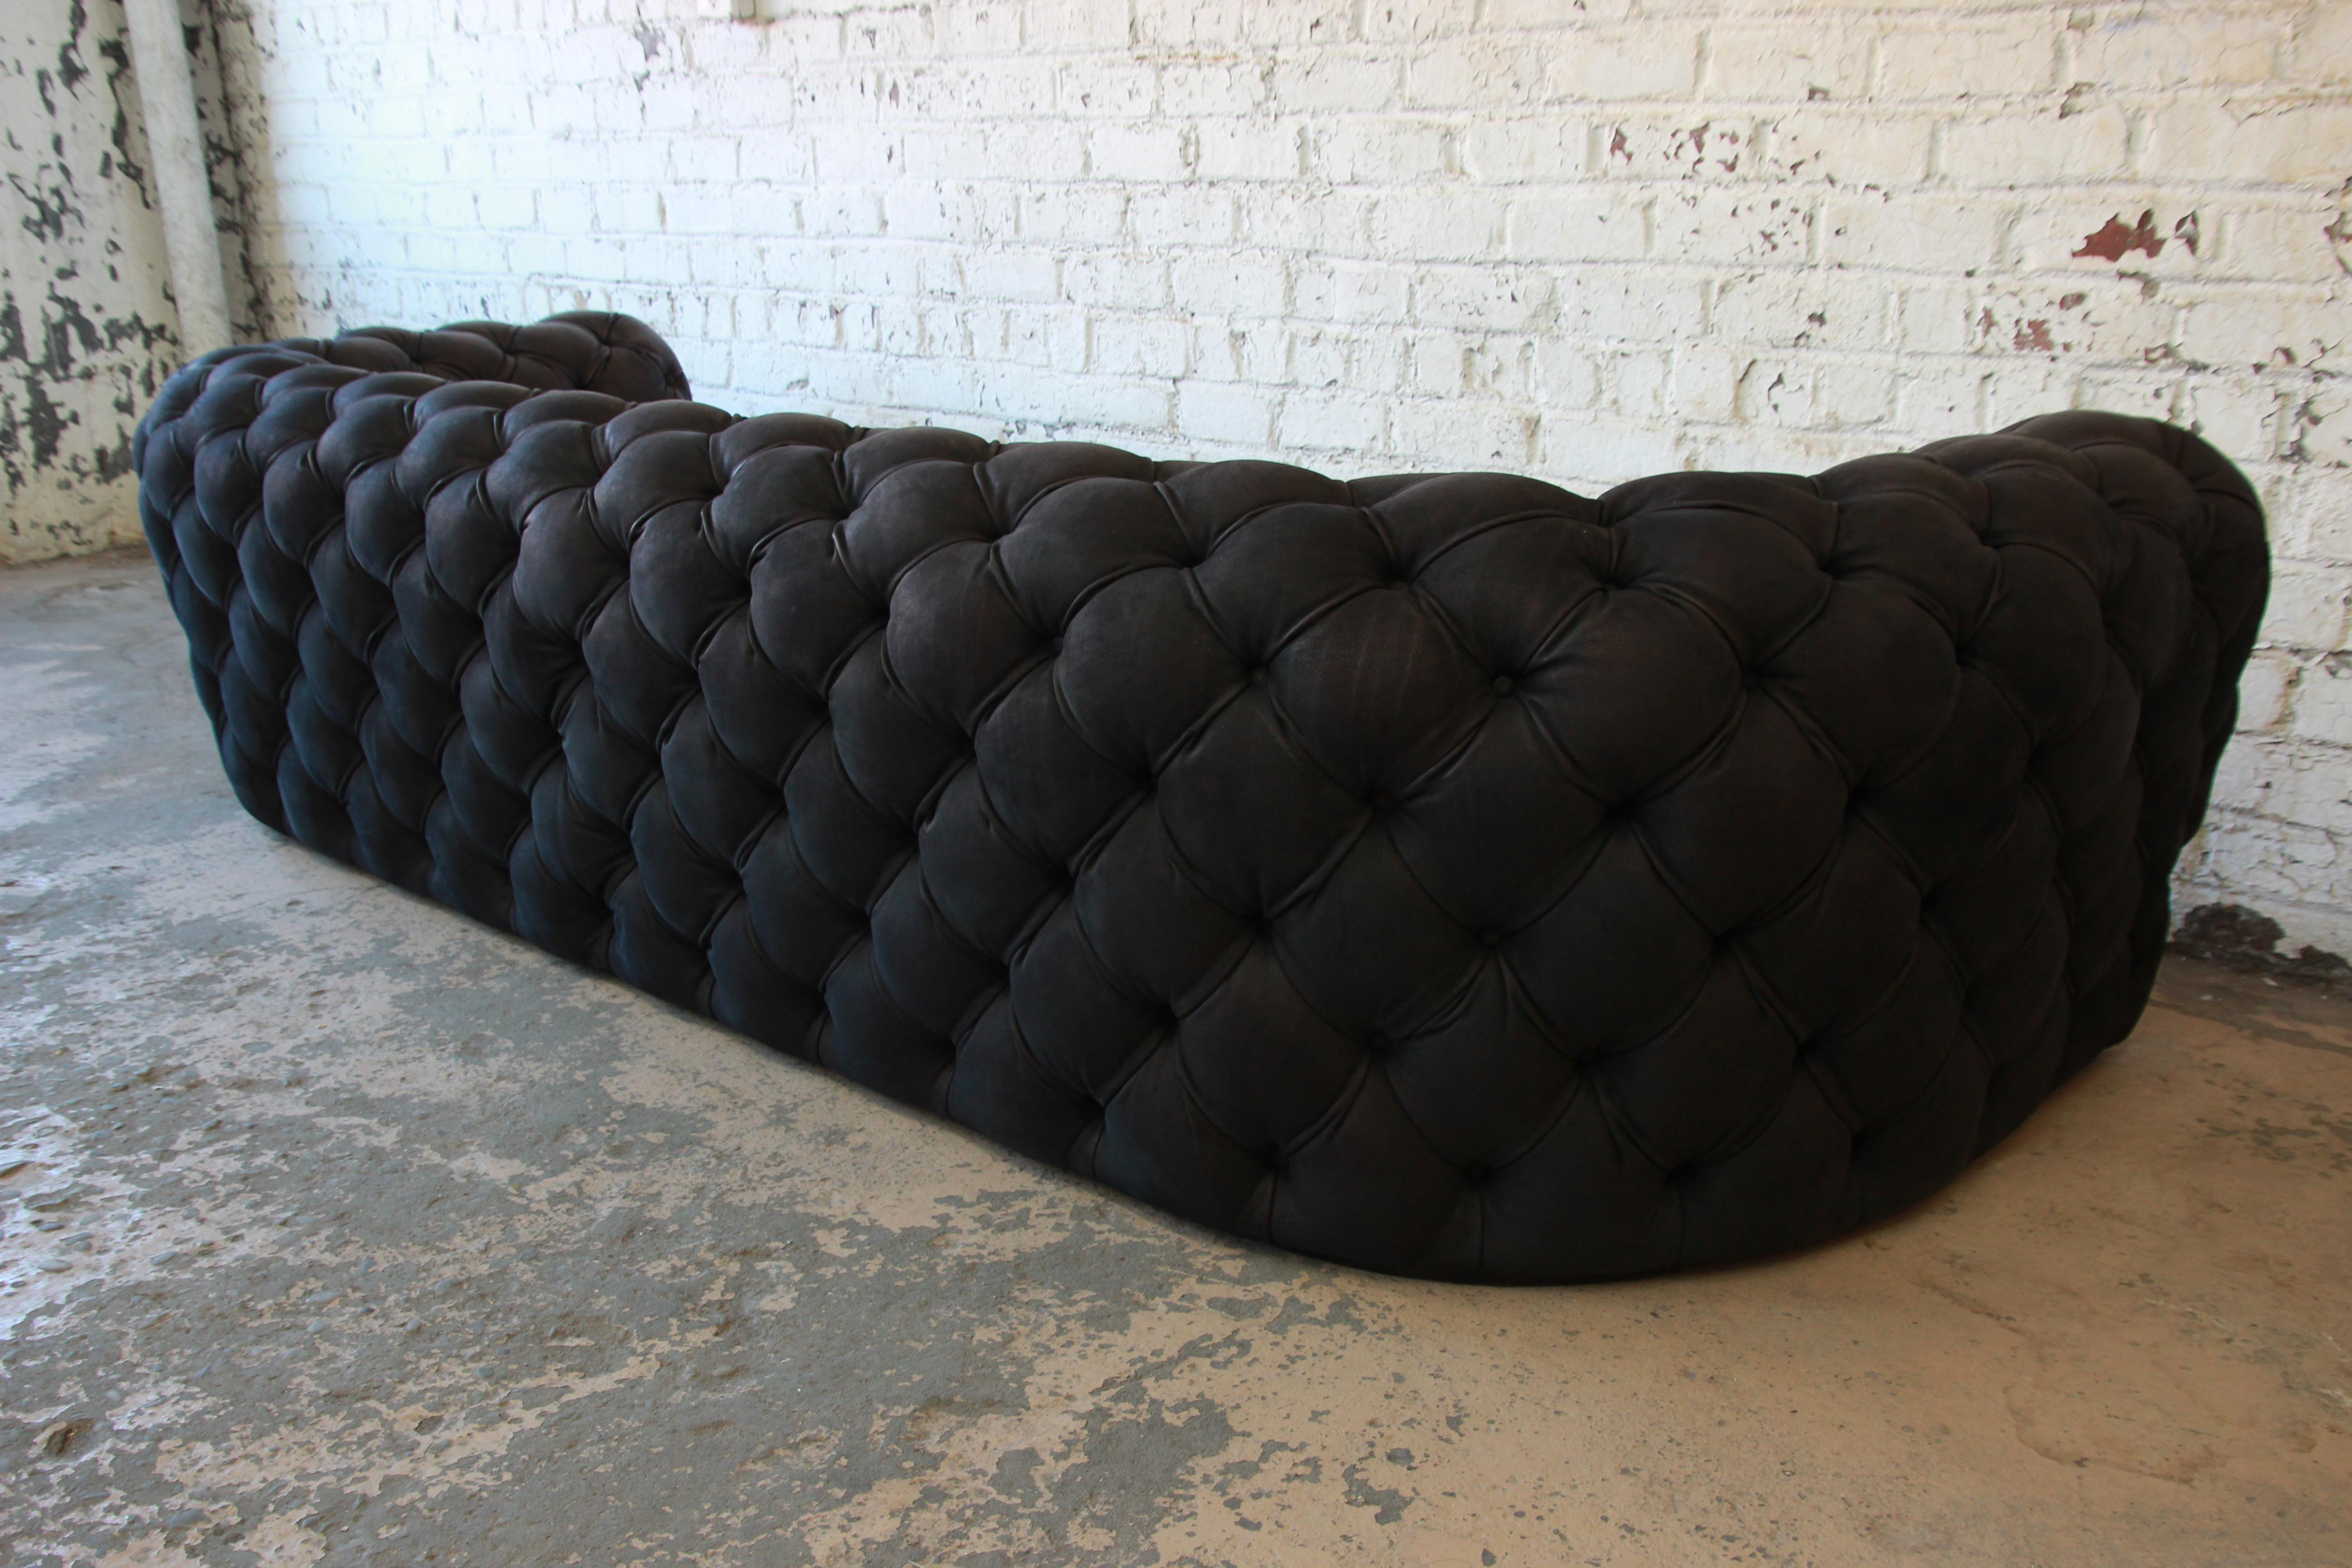 Italian Tufted Black Leather Chester Moon Sofa By Paola Navone For Baxter    Image 7 Of